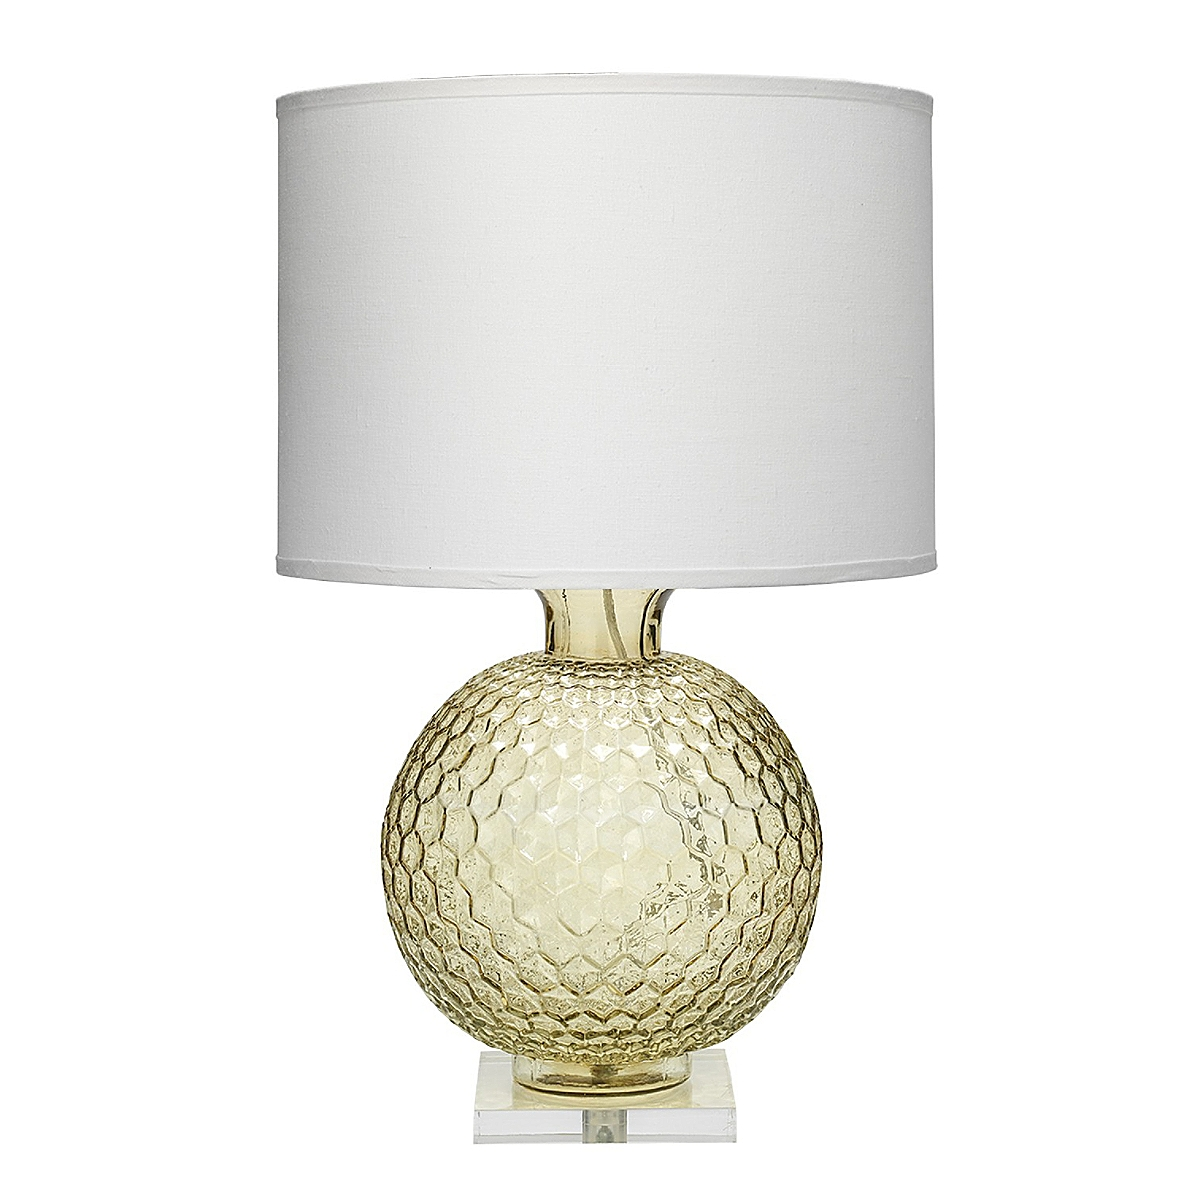 Clark Table Lamp - Taupe